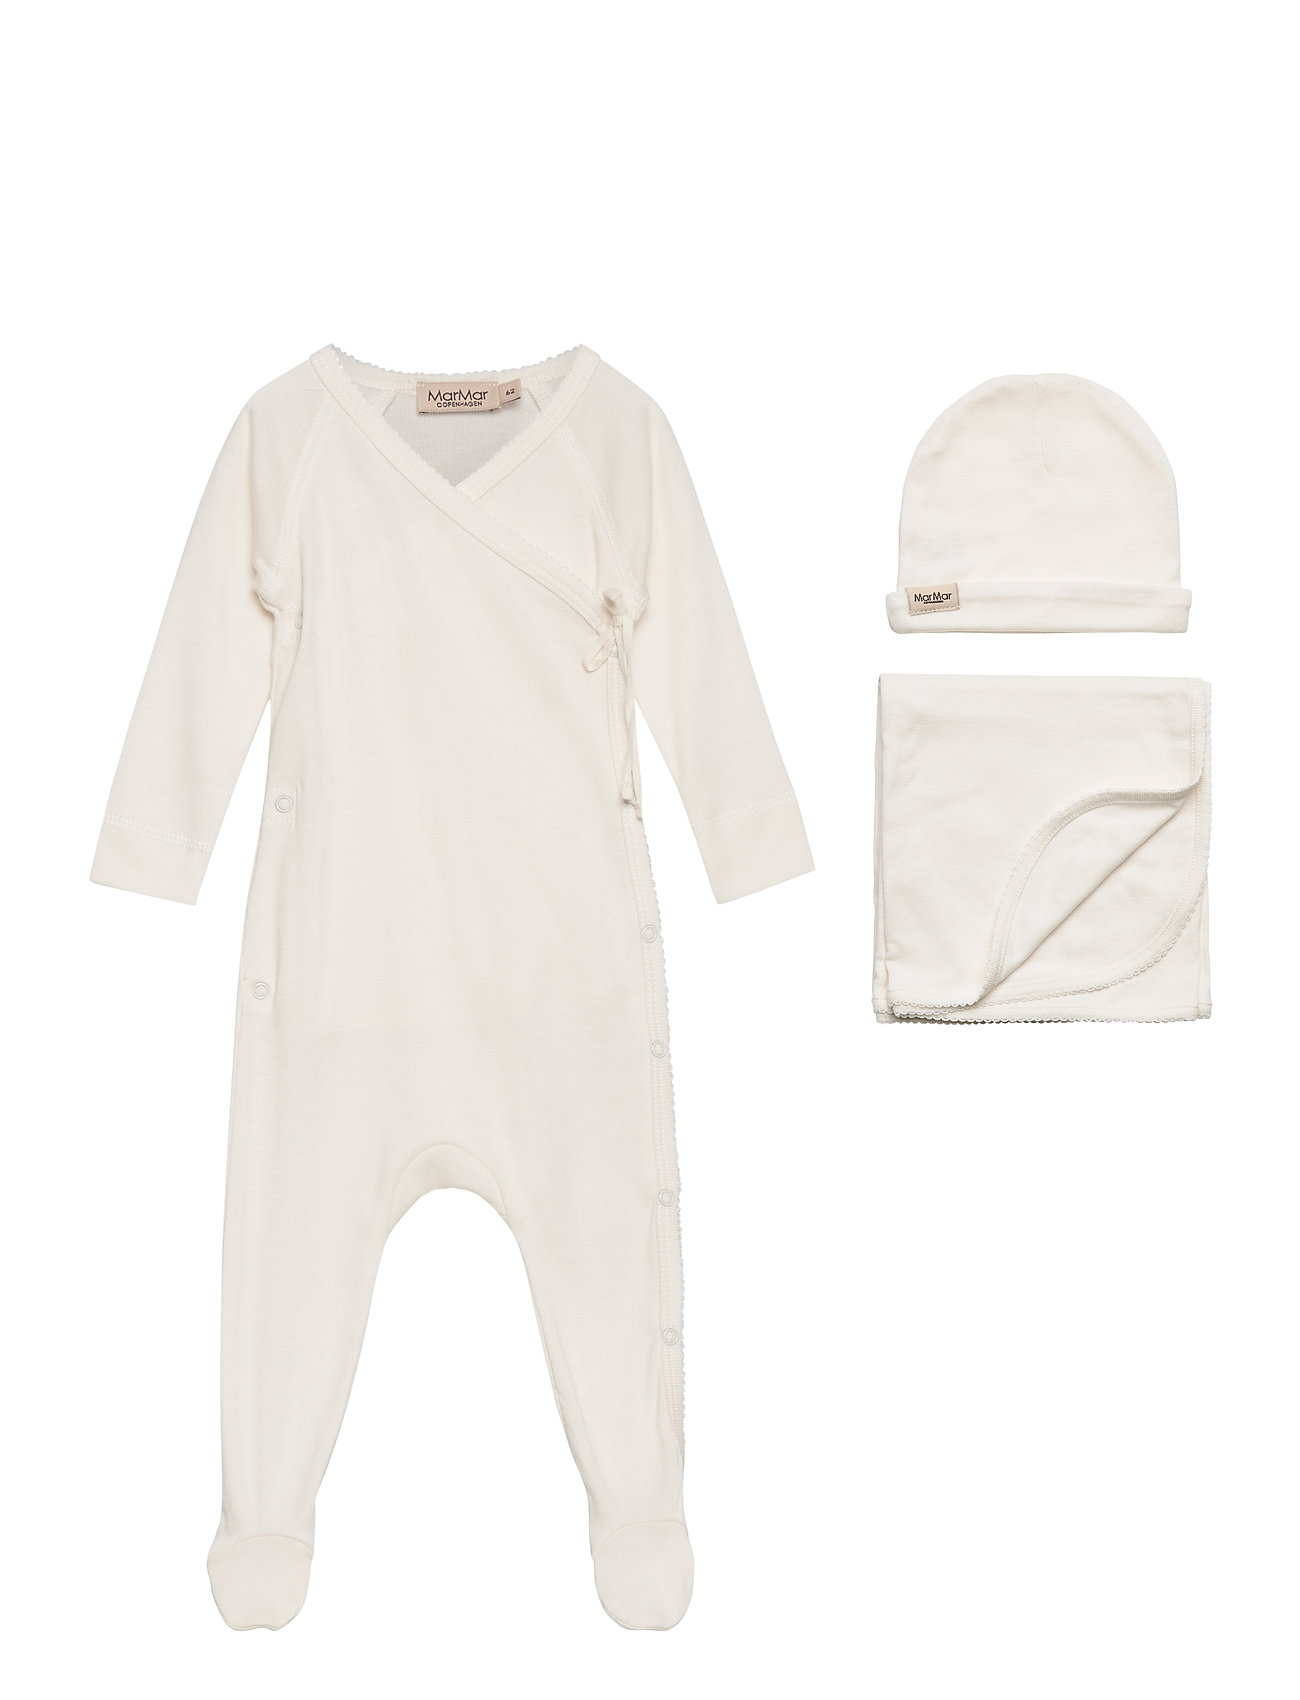 MarMar Cph New Born Gift Box - suit, hat and blanket - GENTLE WHITE